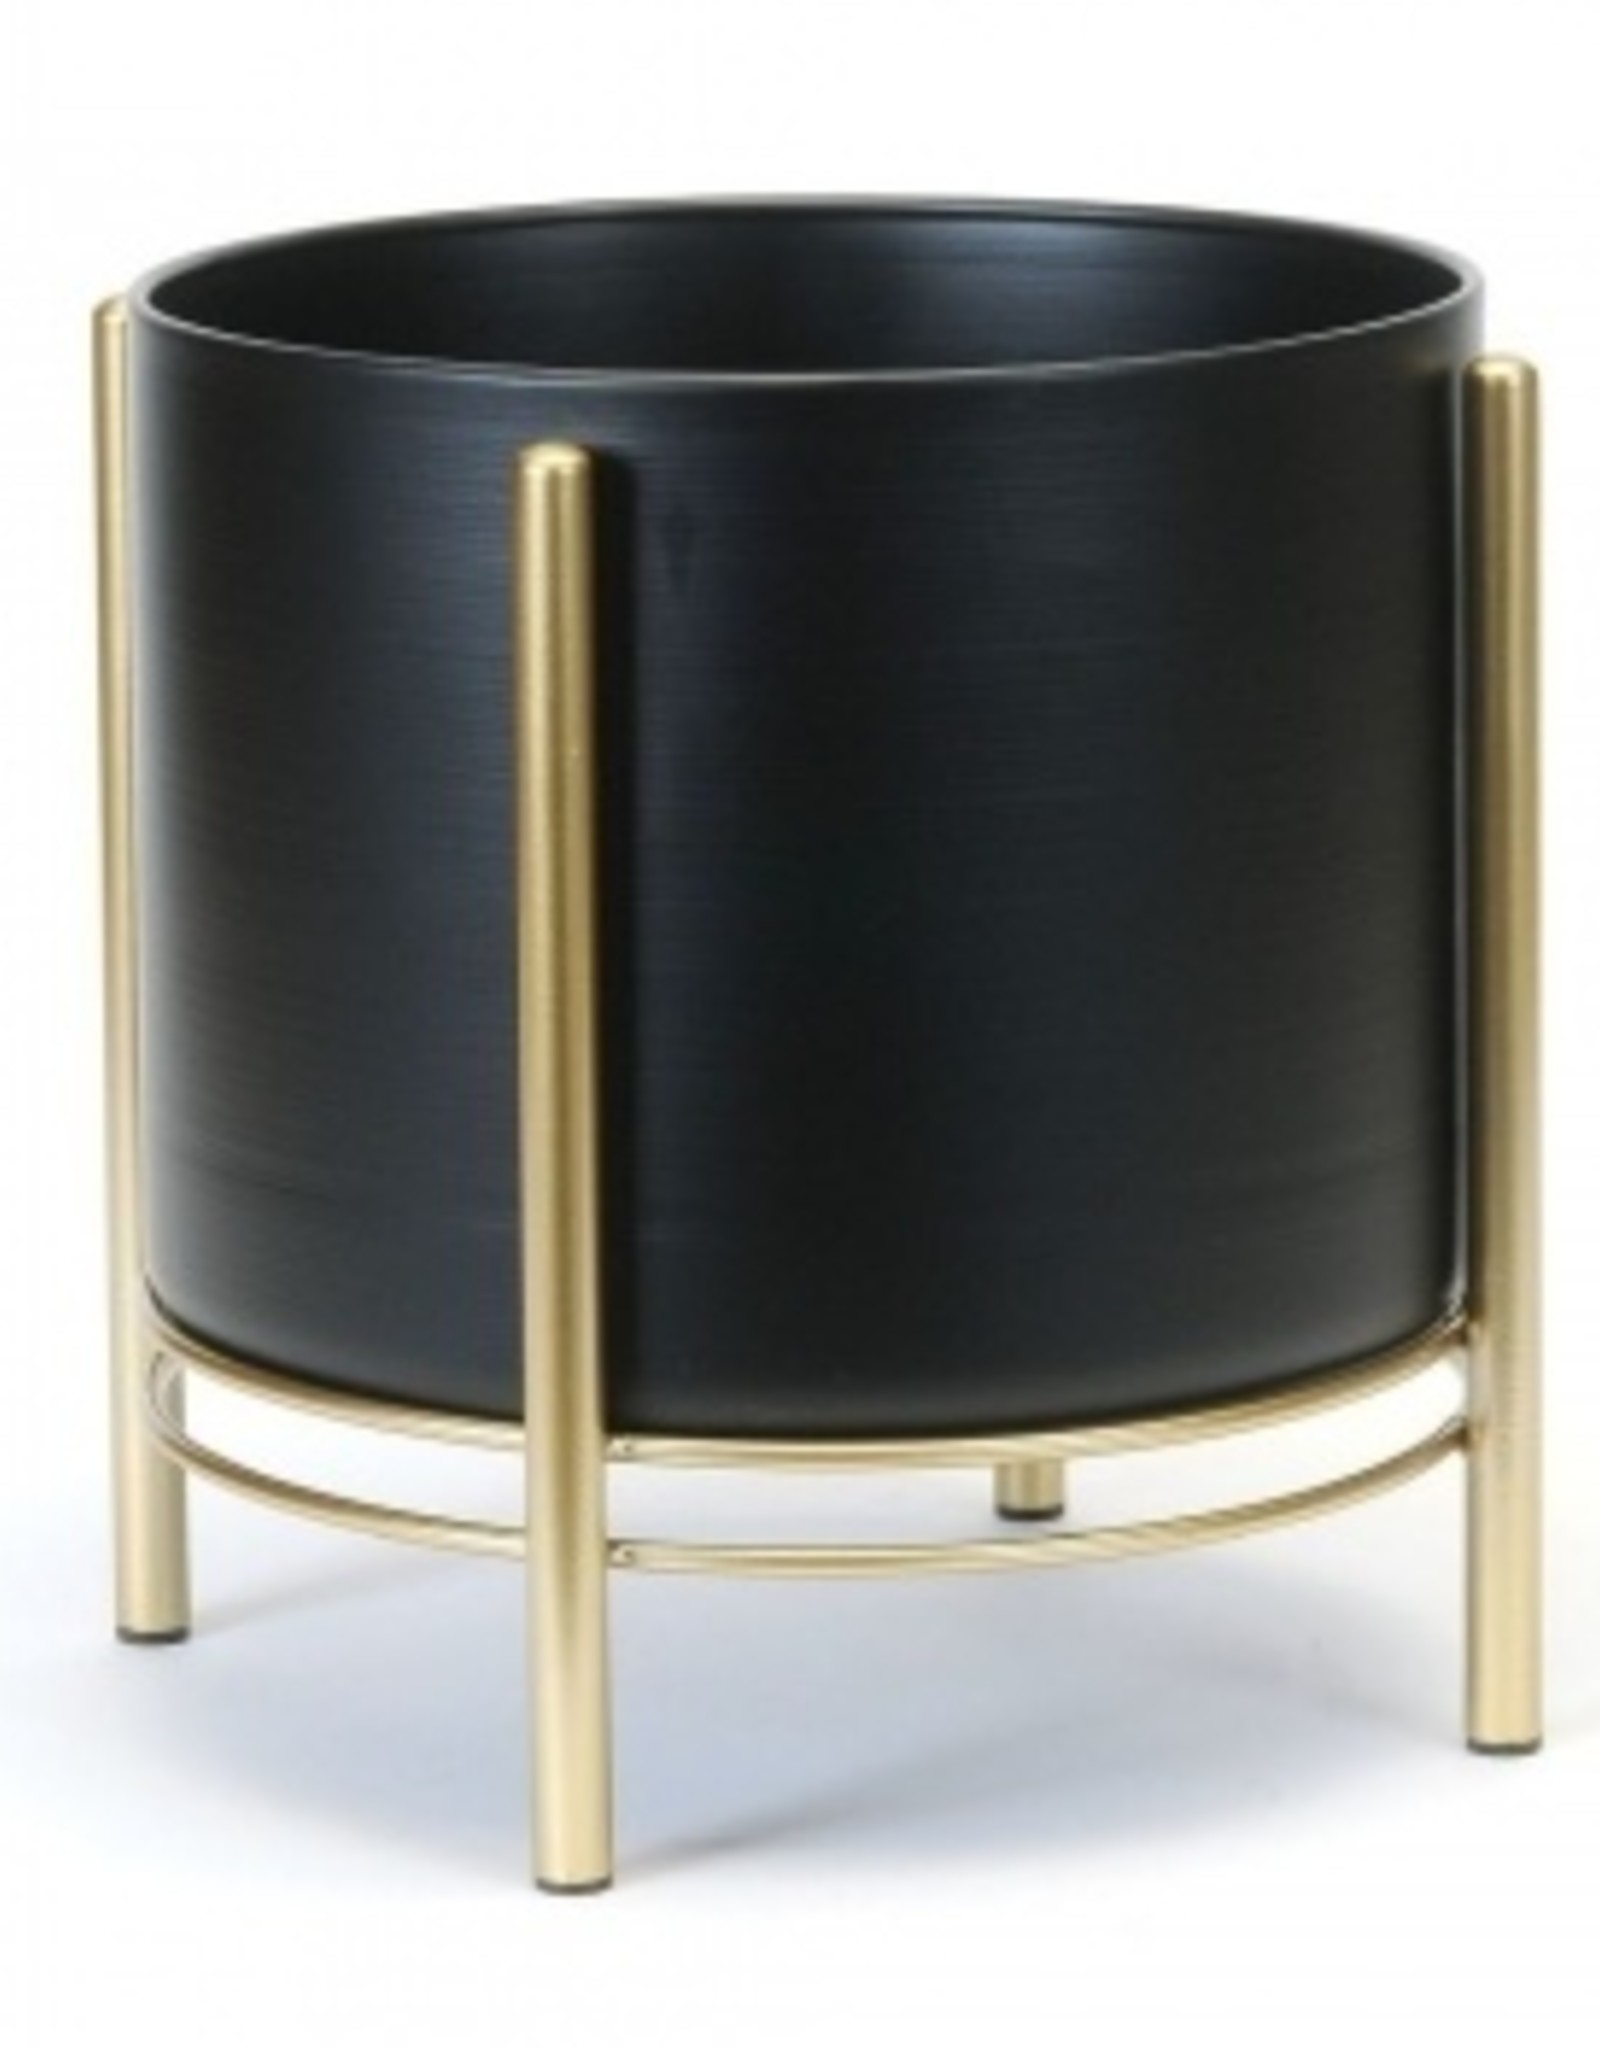 Floor Planter Blk/Gold (large)